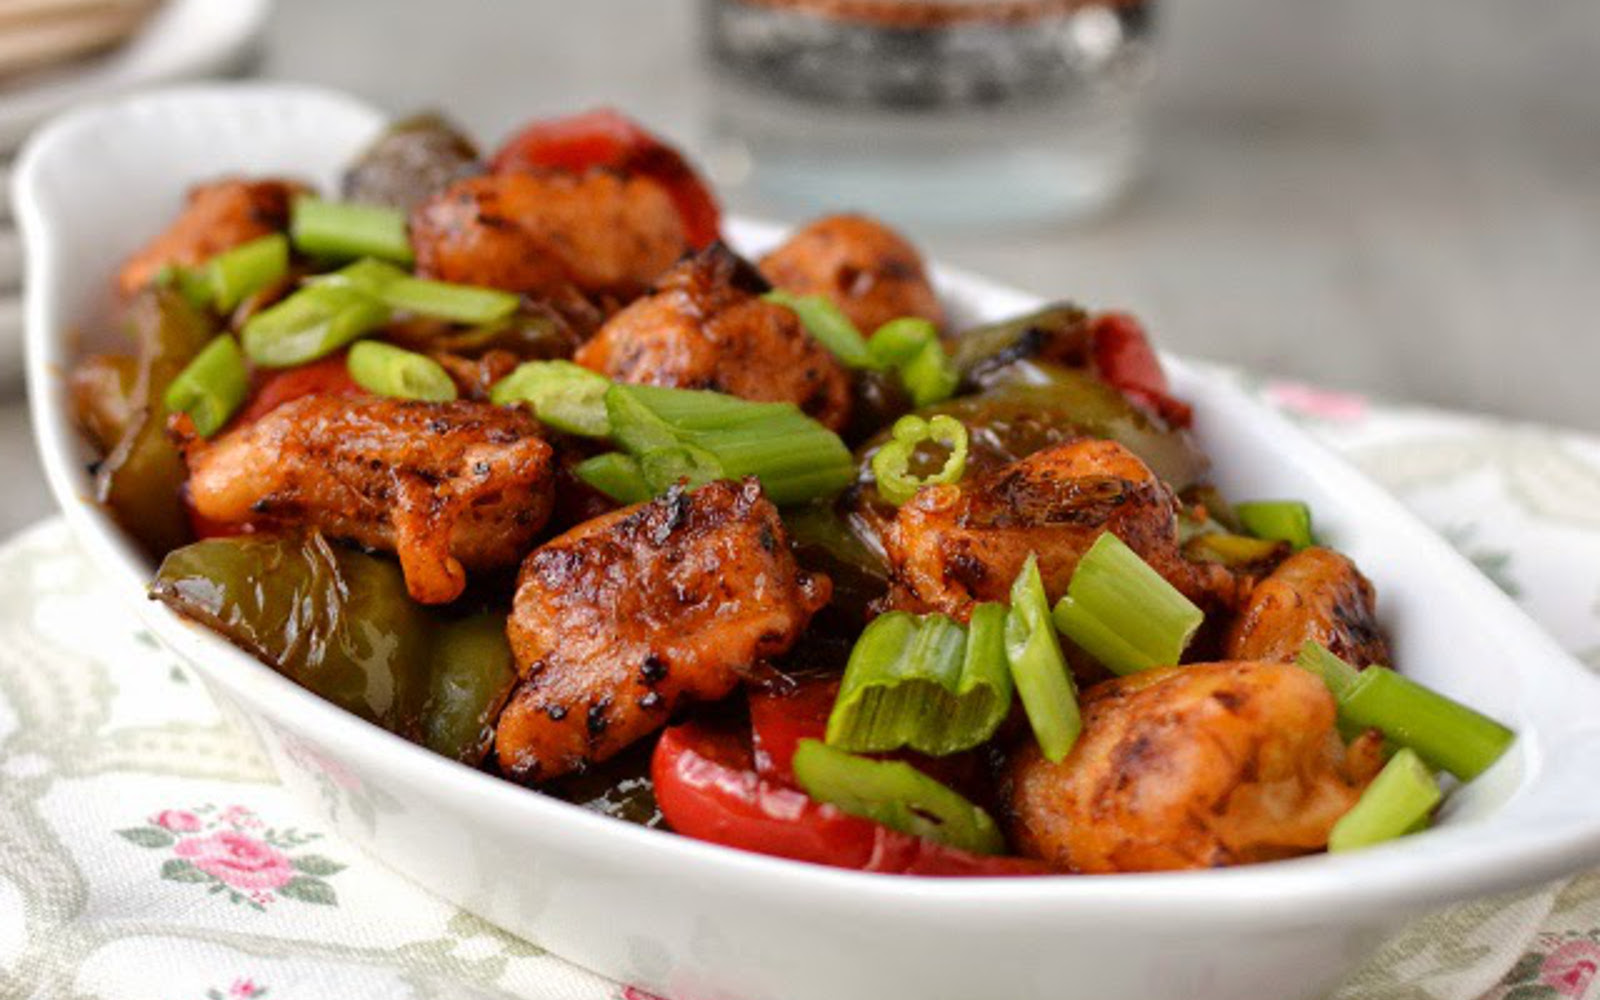 Baby Corn Fritter and Spicy Bell Pepper Stir Fry